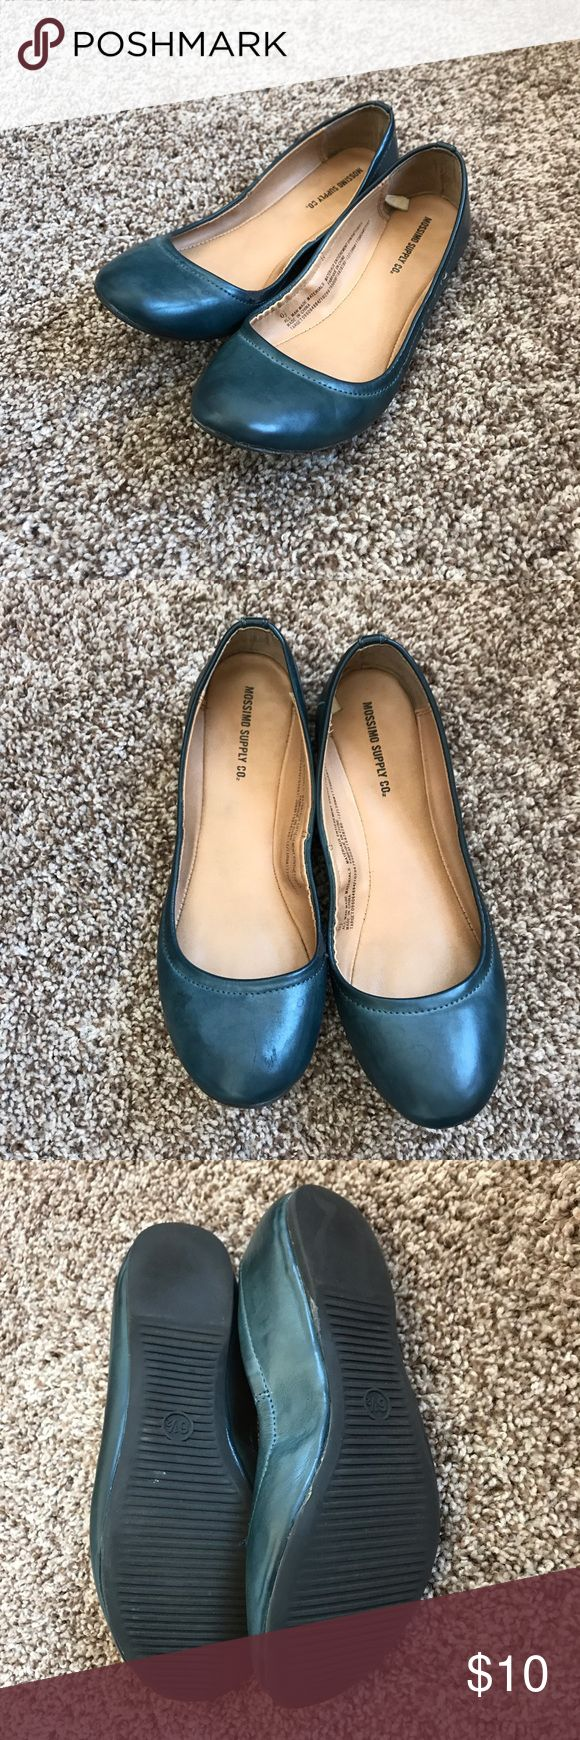 Mossimo • Teal Flats Worn once! No paypal, no trades, I do sell on other sites ask if you want my info for those. Mossimo Supply Co Shoes Flats & Loafers